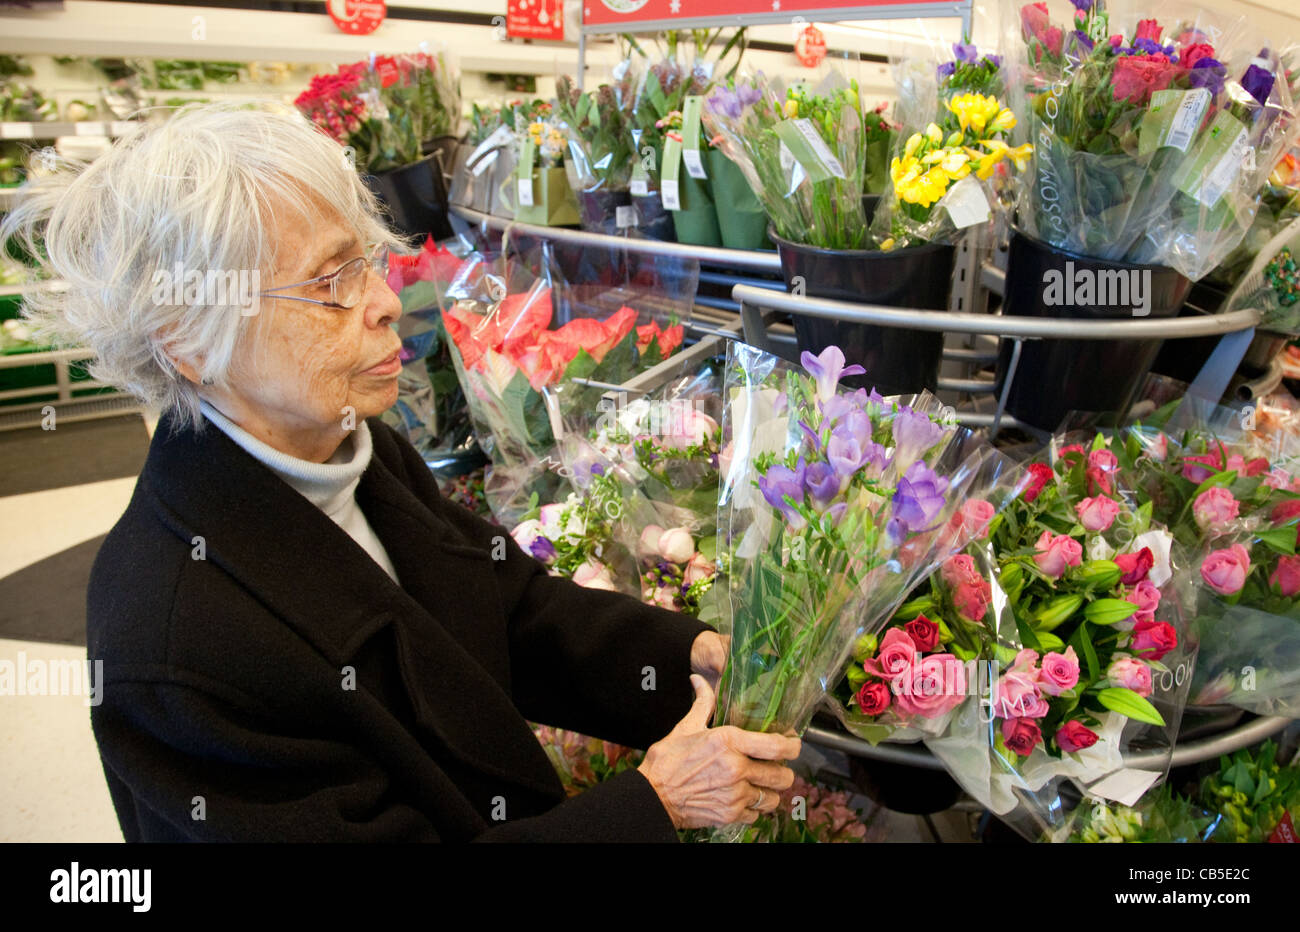 Elderly woman buying flowers stock photos elderly woman buying elderly lady buying flowers in a waitrose supermarket uk stock image izmirmasajfo